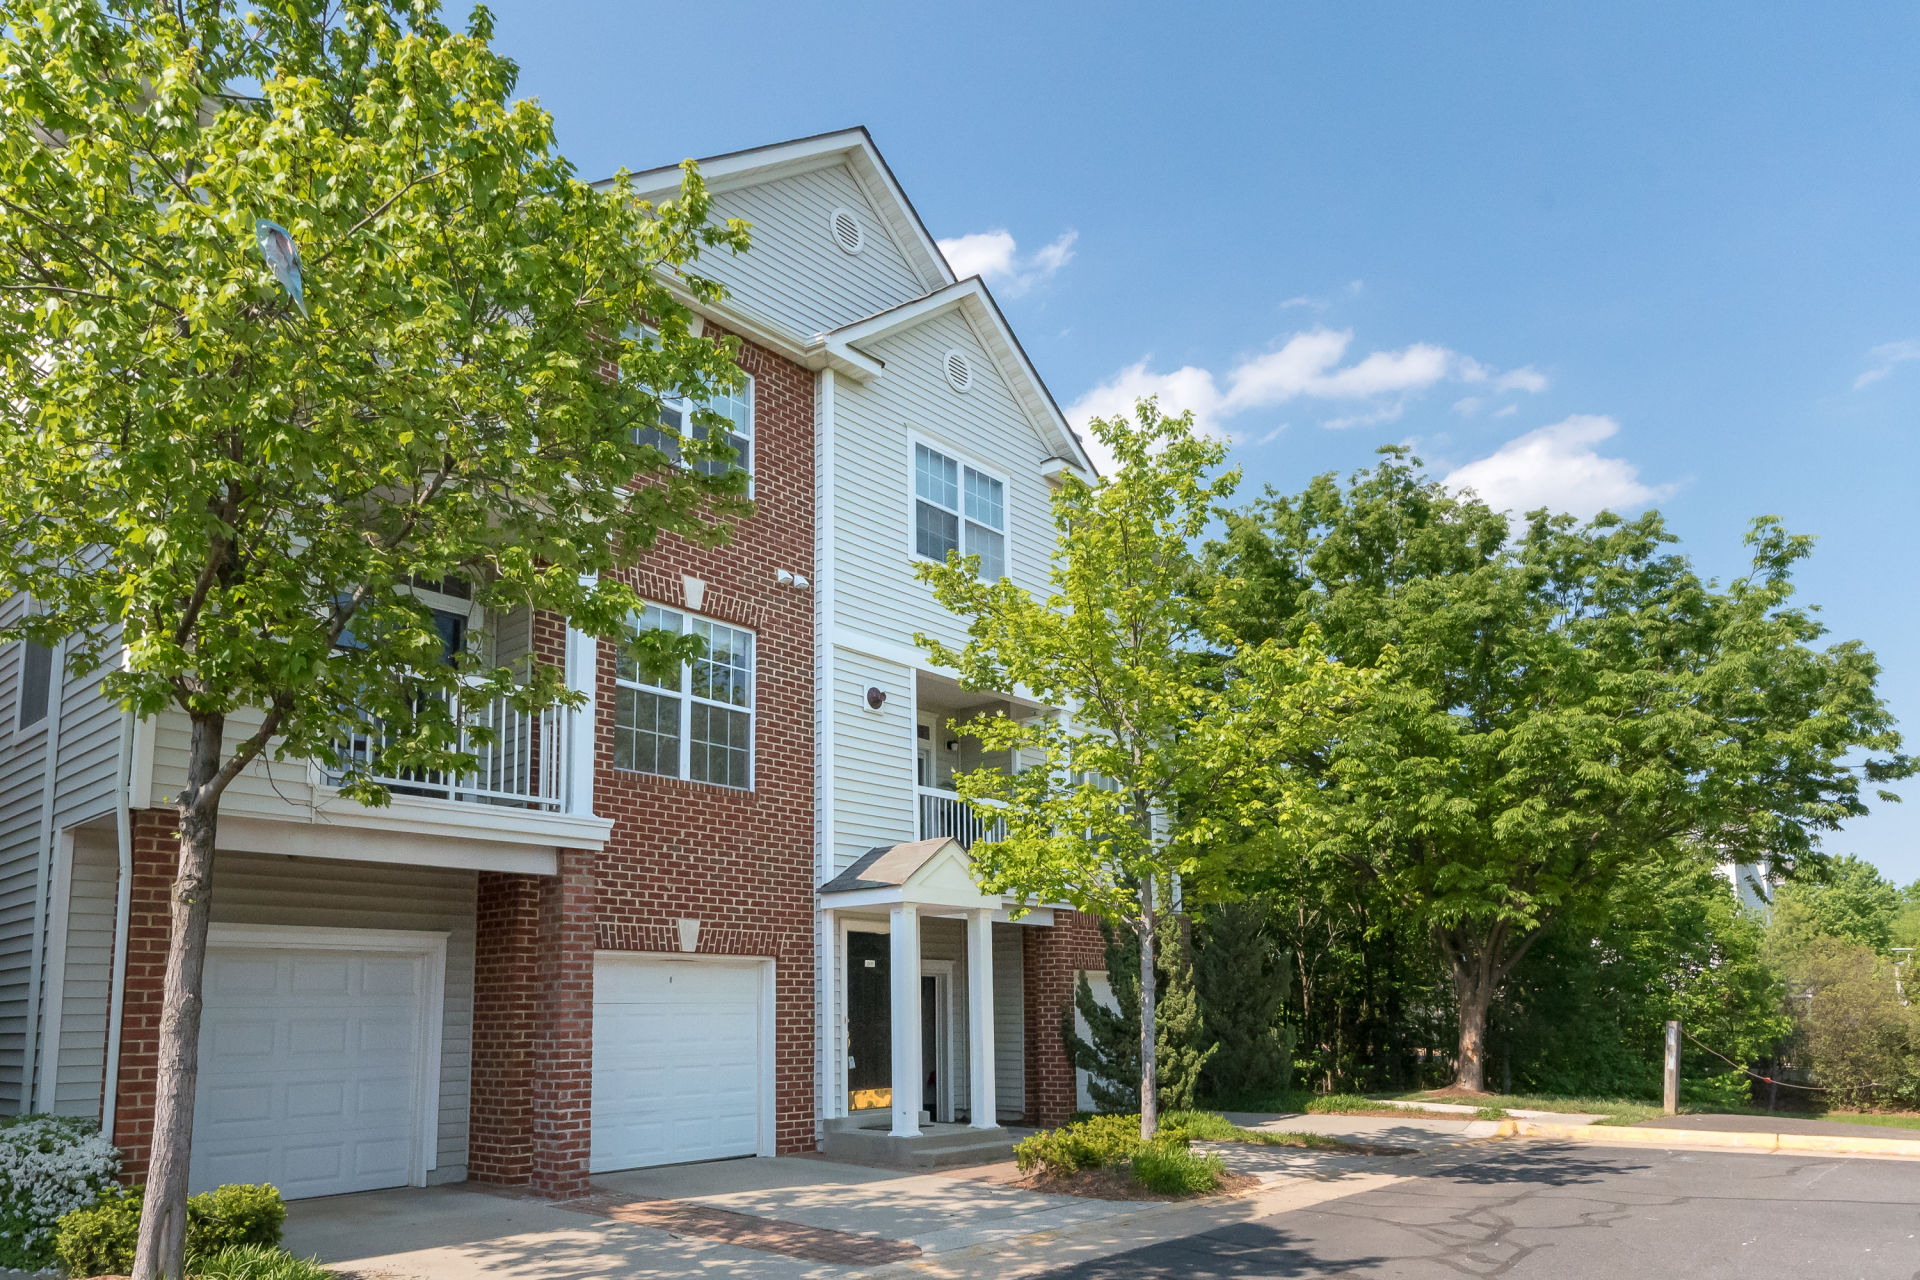 Another Multiple Offer Sale for the Bob Nelson Team in Herndon, VA